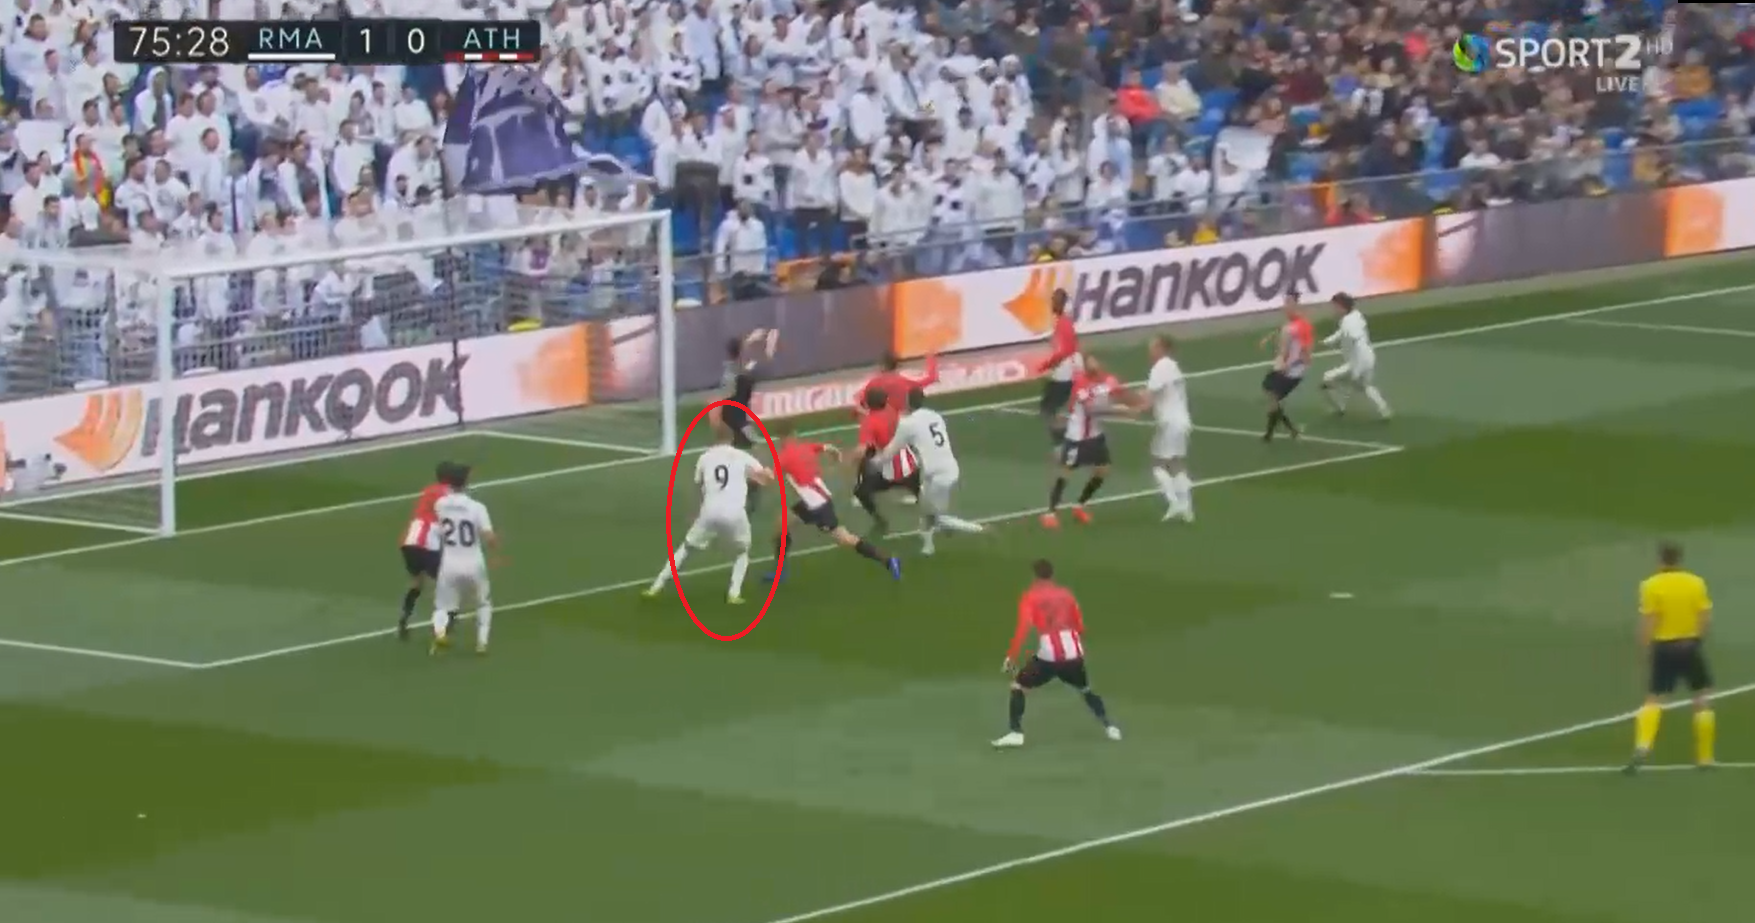 Karim Benzema Tactical Analysis Real Madrid